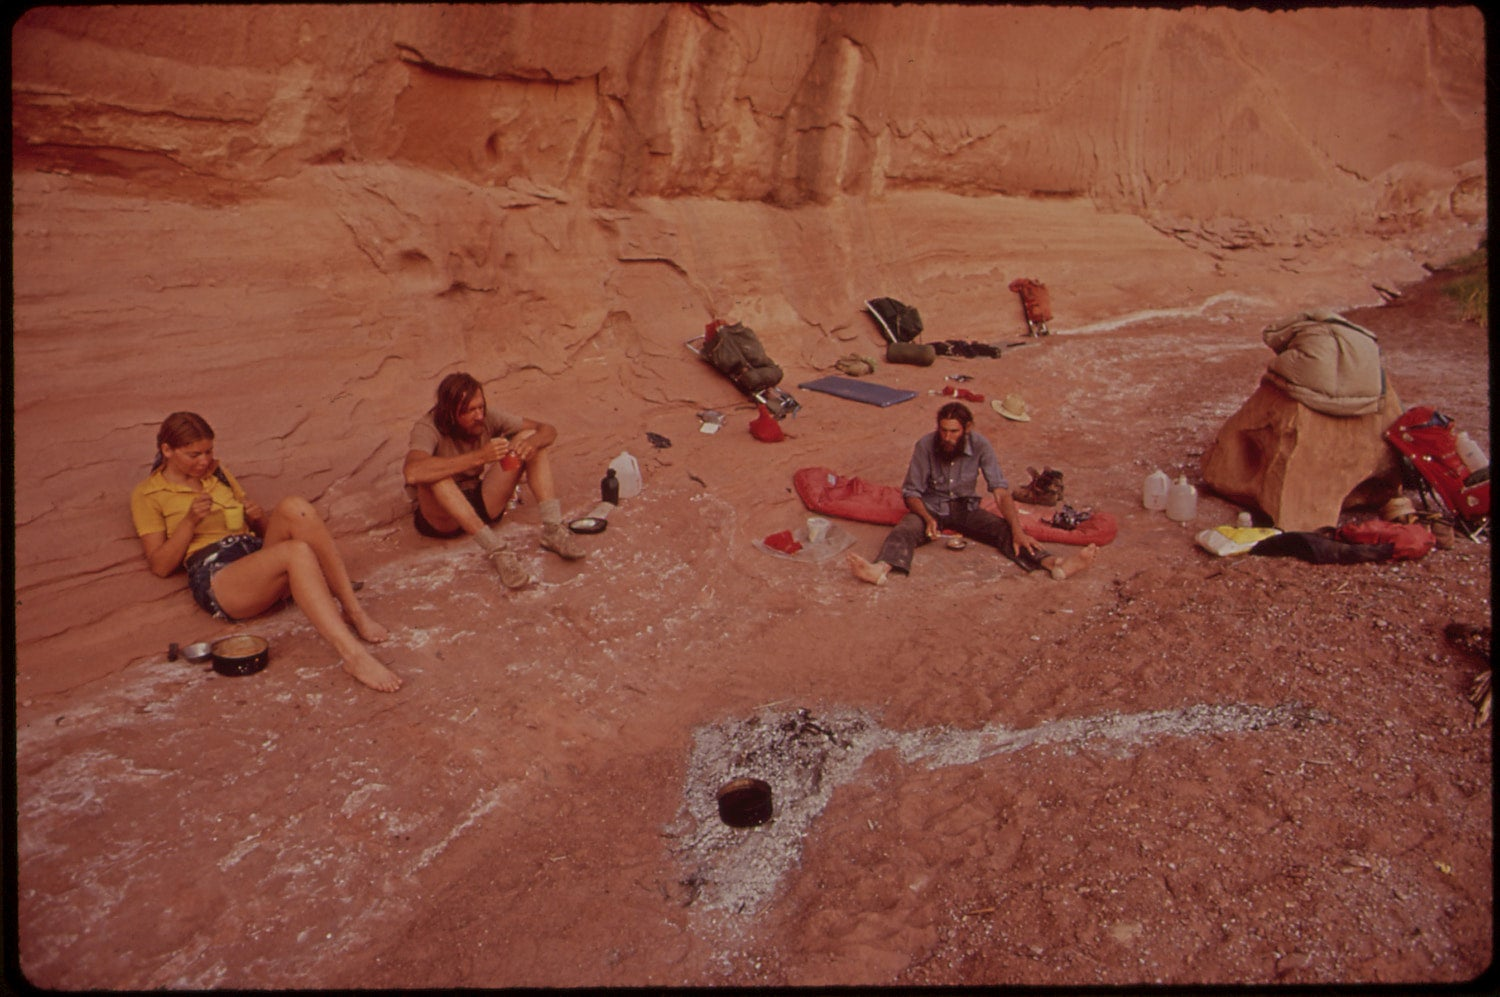 backpackers taking a break with their gear spread around in the maze at canyonlands